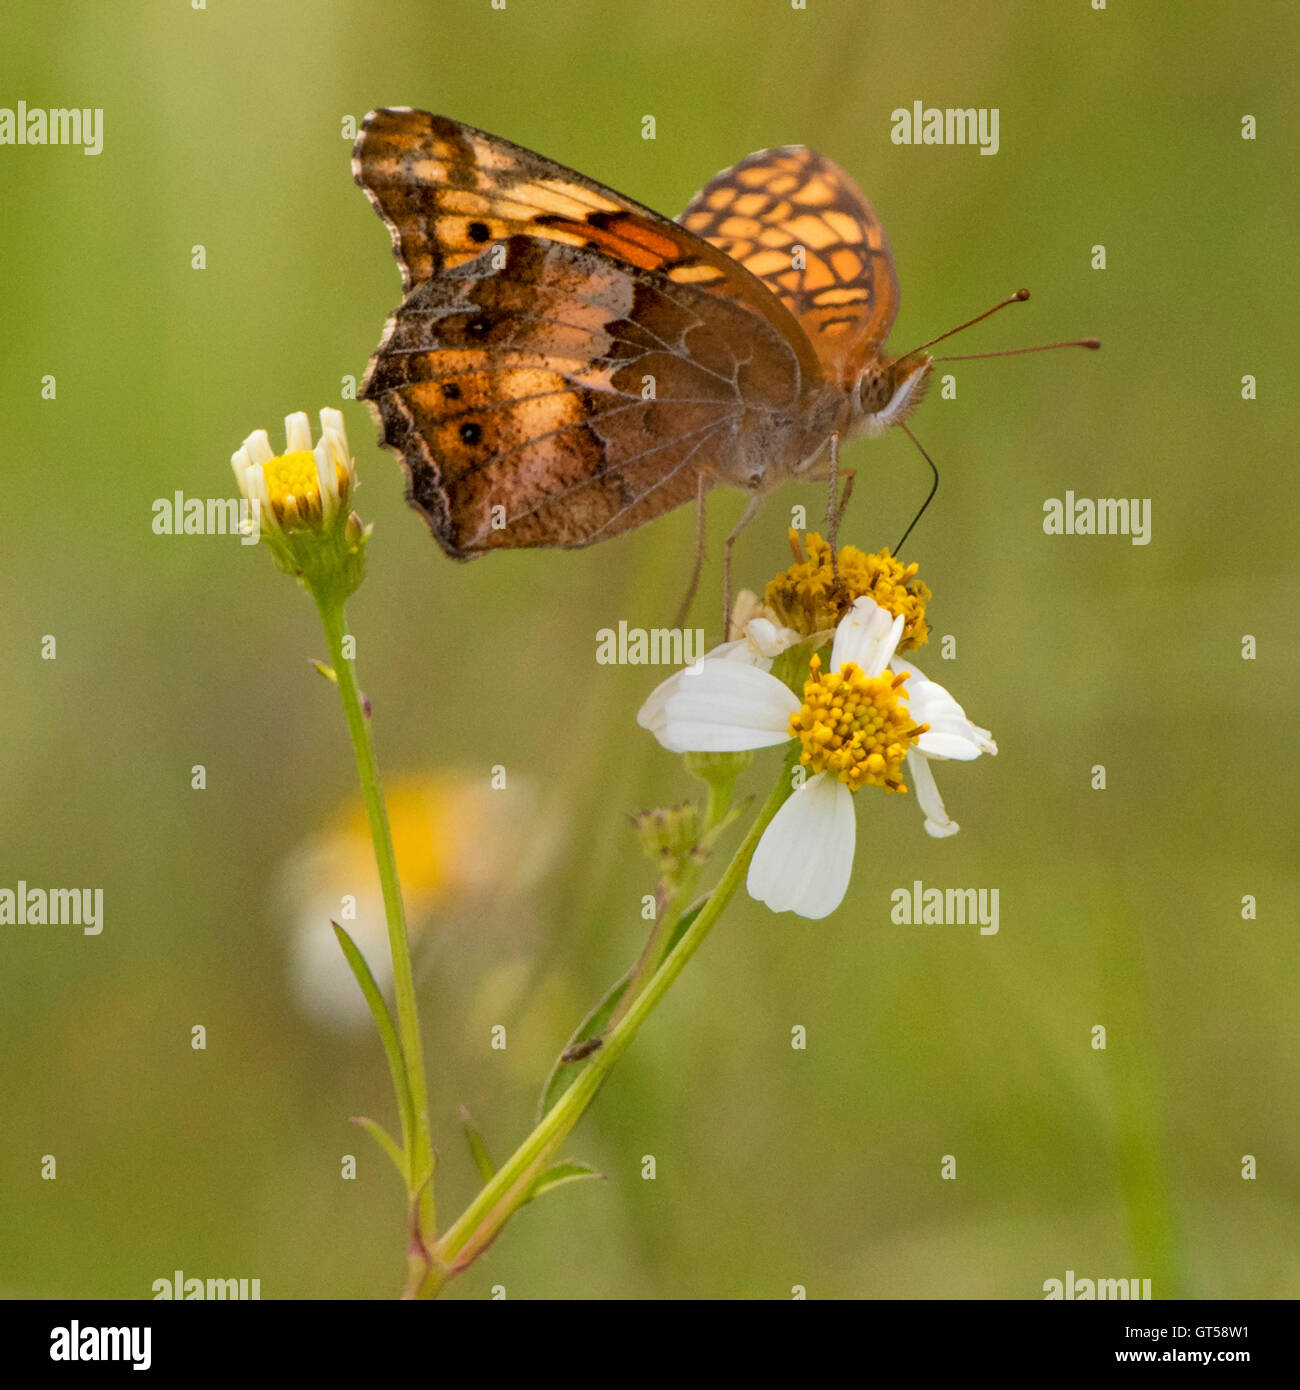 White flower butterfly florida stock photos white flower butterfly butterfly on a white flower stock image mightylinksfo